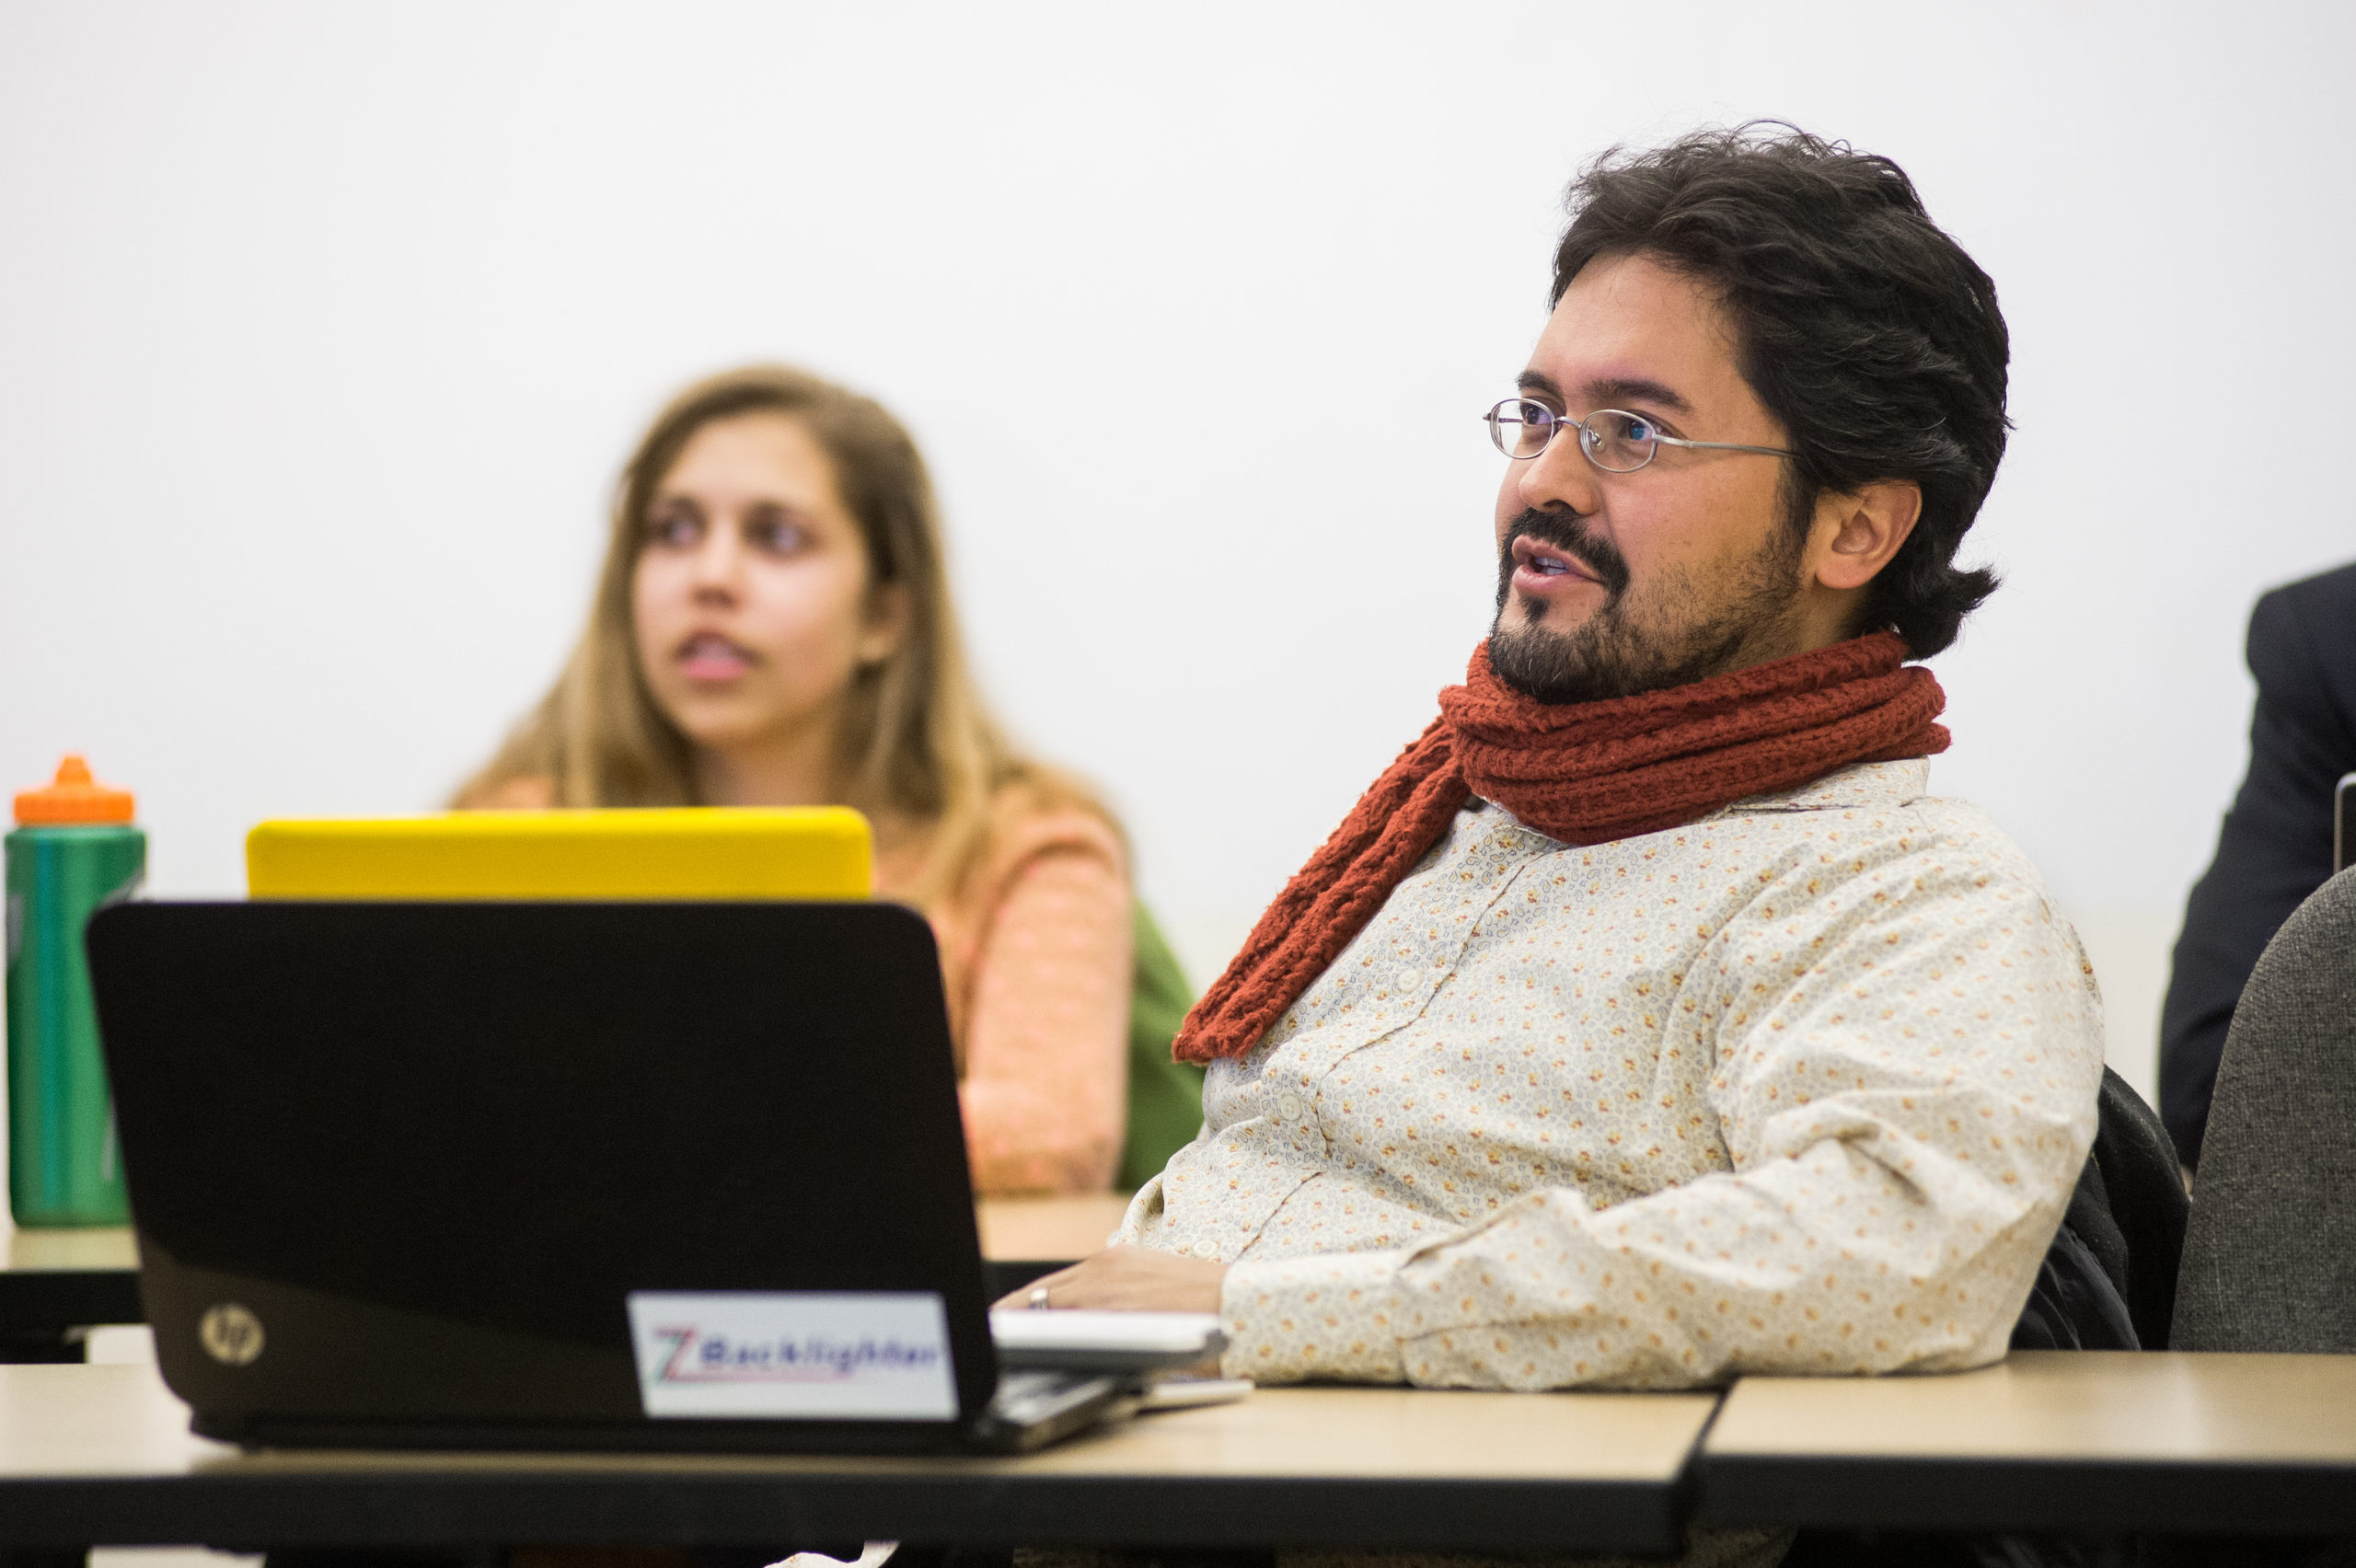 man talking in class sitting in front of laptop